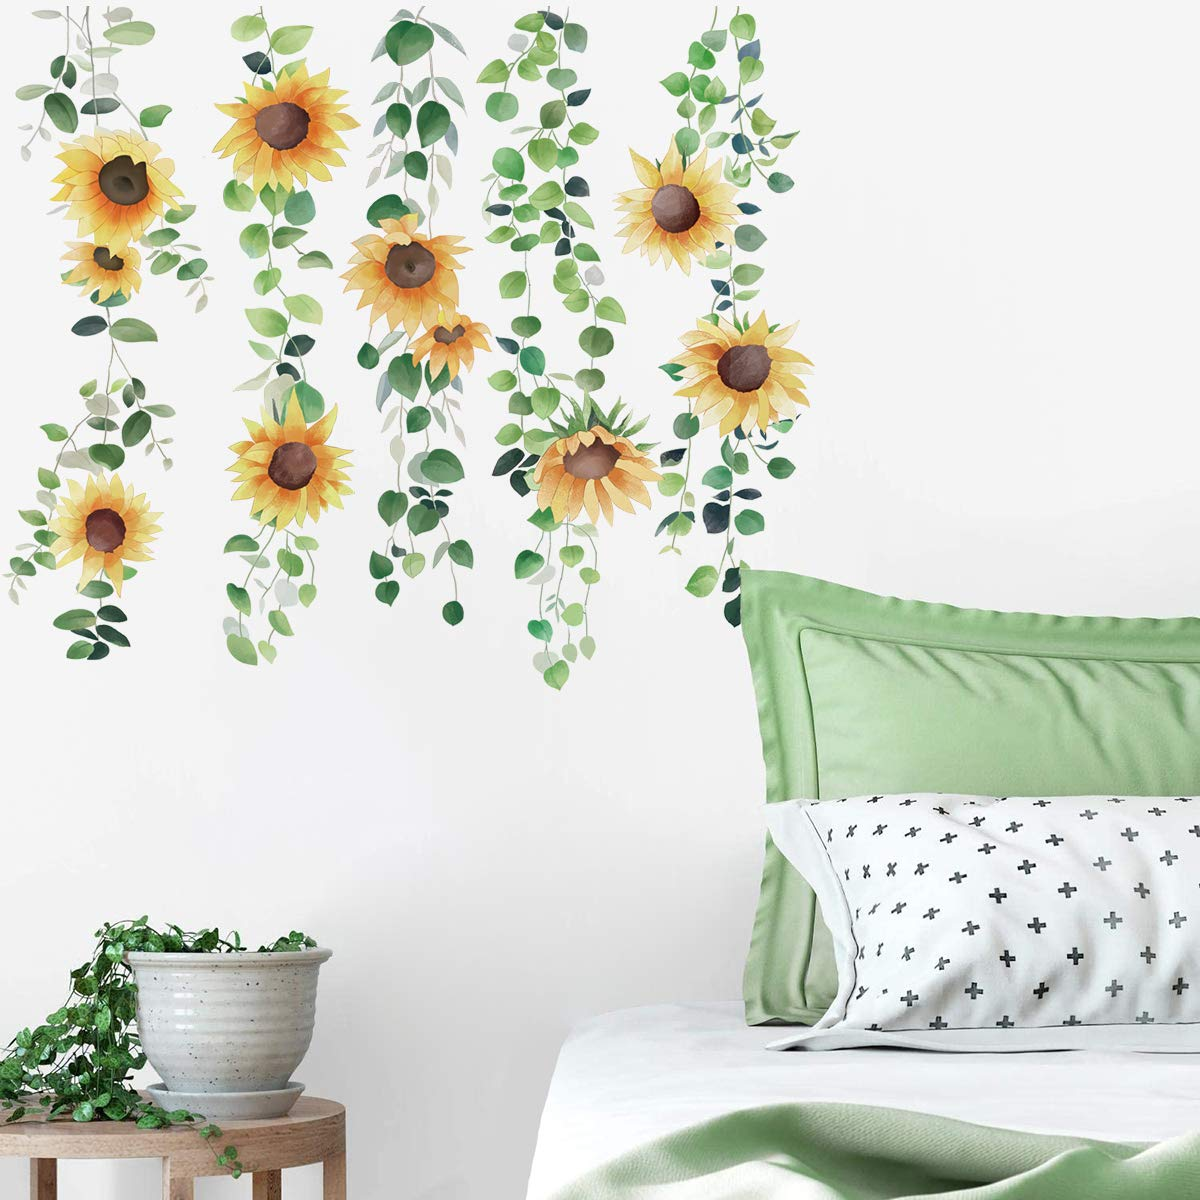 Decalplanet Sunflower Wall Decals Floral Hanging Vine Green Plants Wall Art Stickers for Girls Bedroom Living Room Home Decor